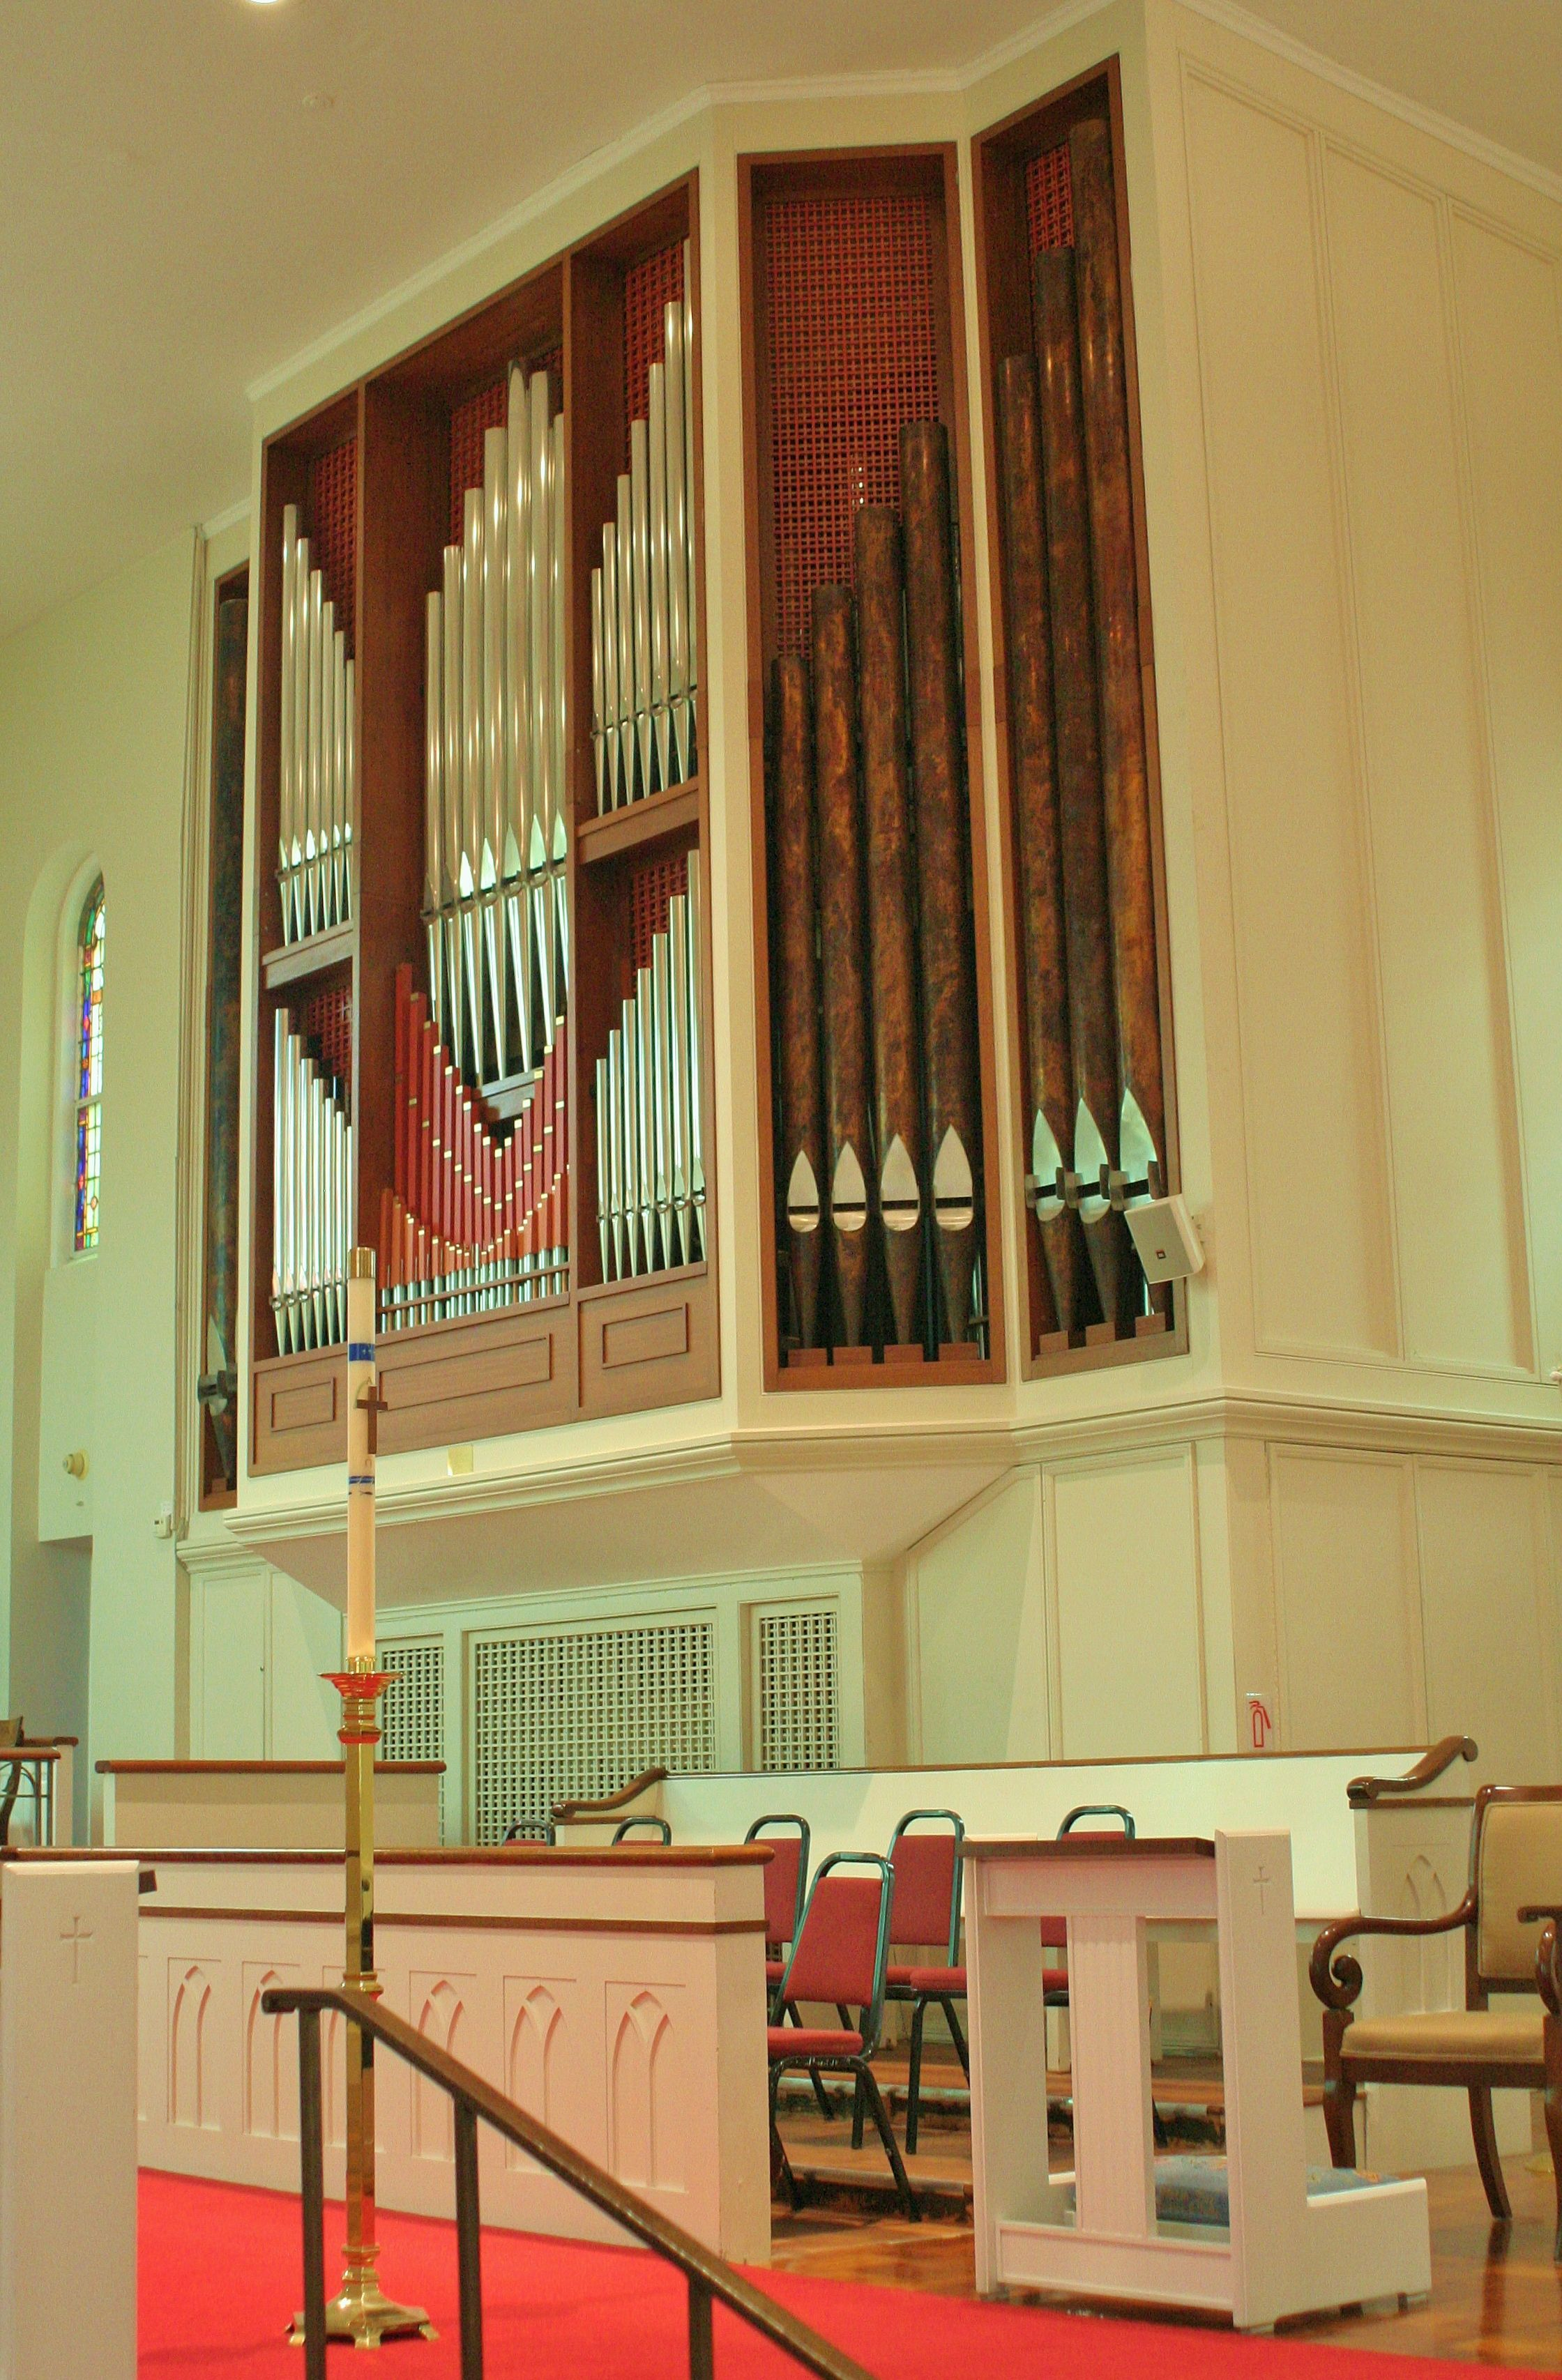 Work by Buzard Pipe Organ Builders